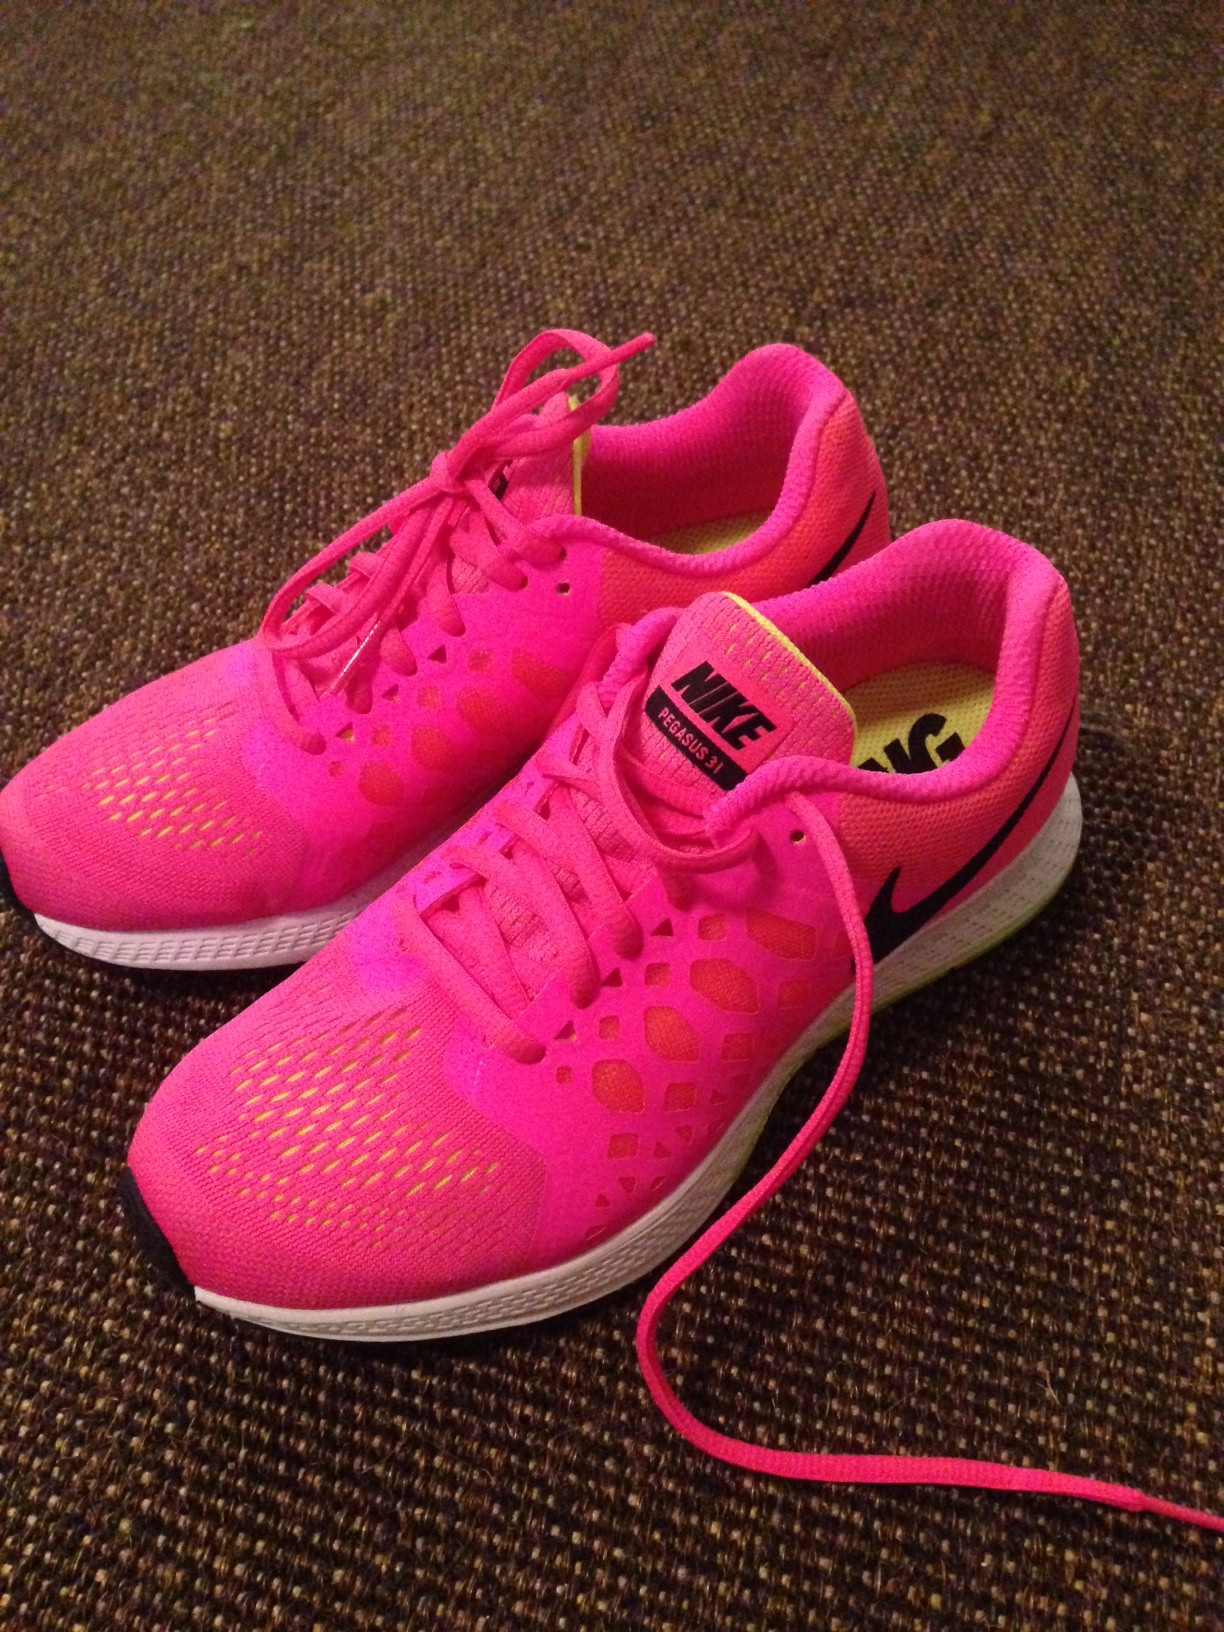 Can't get motivated? Get some new shoes! The brighter, the better!